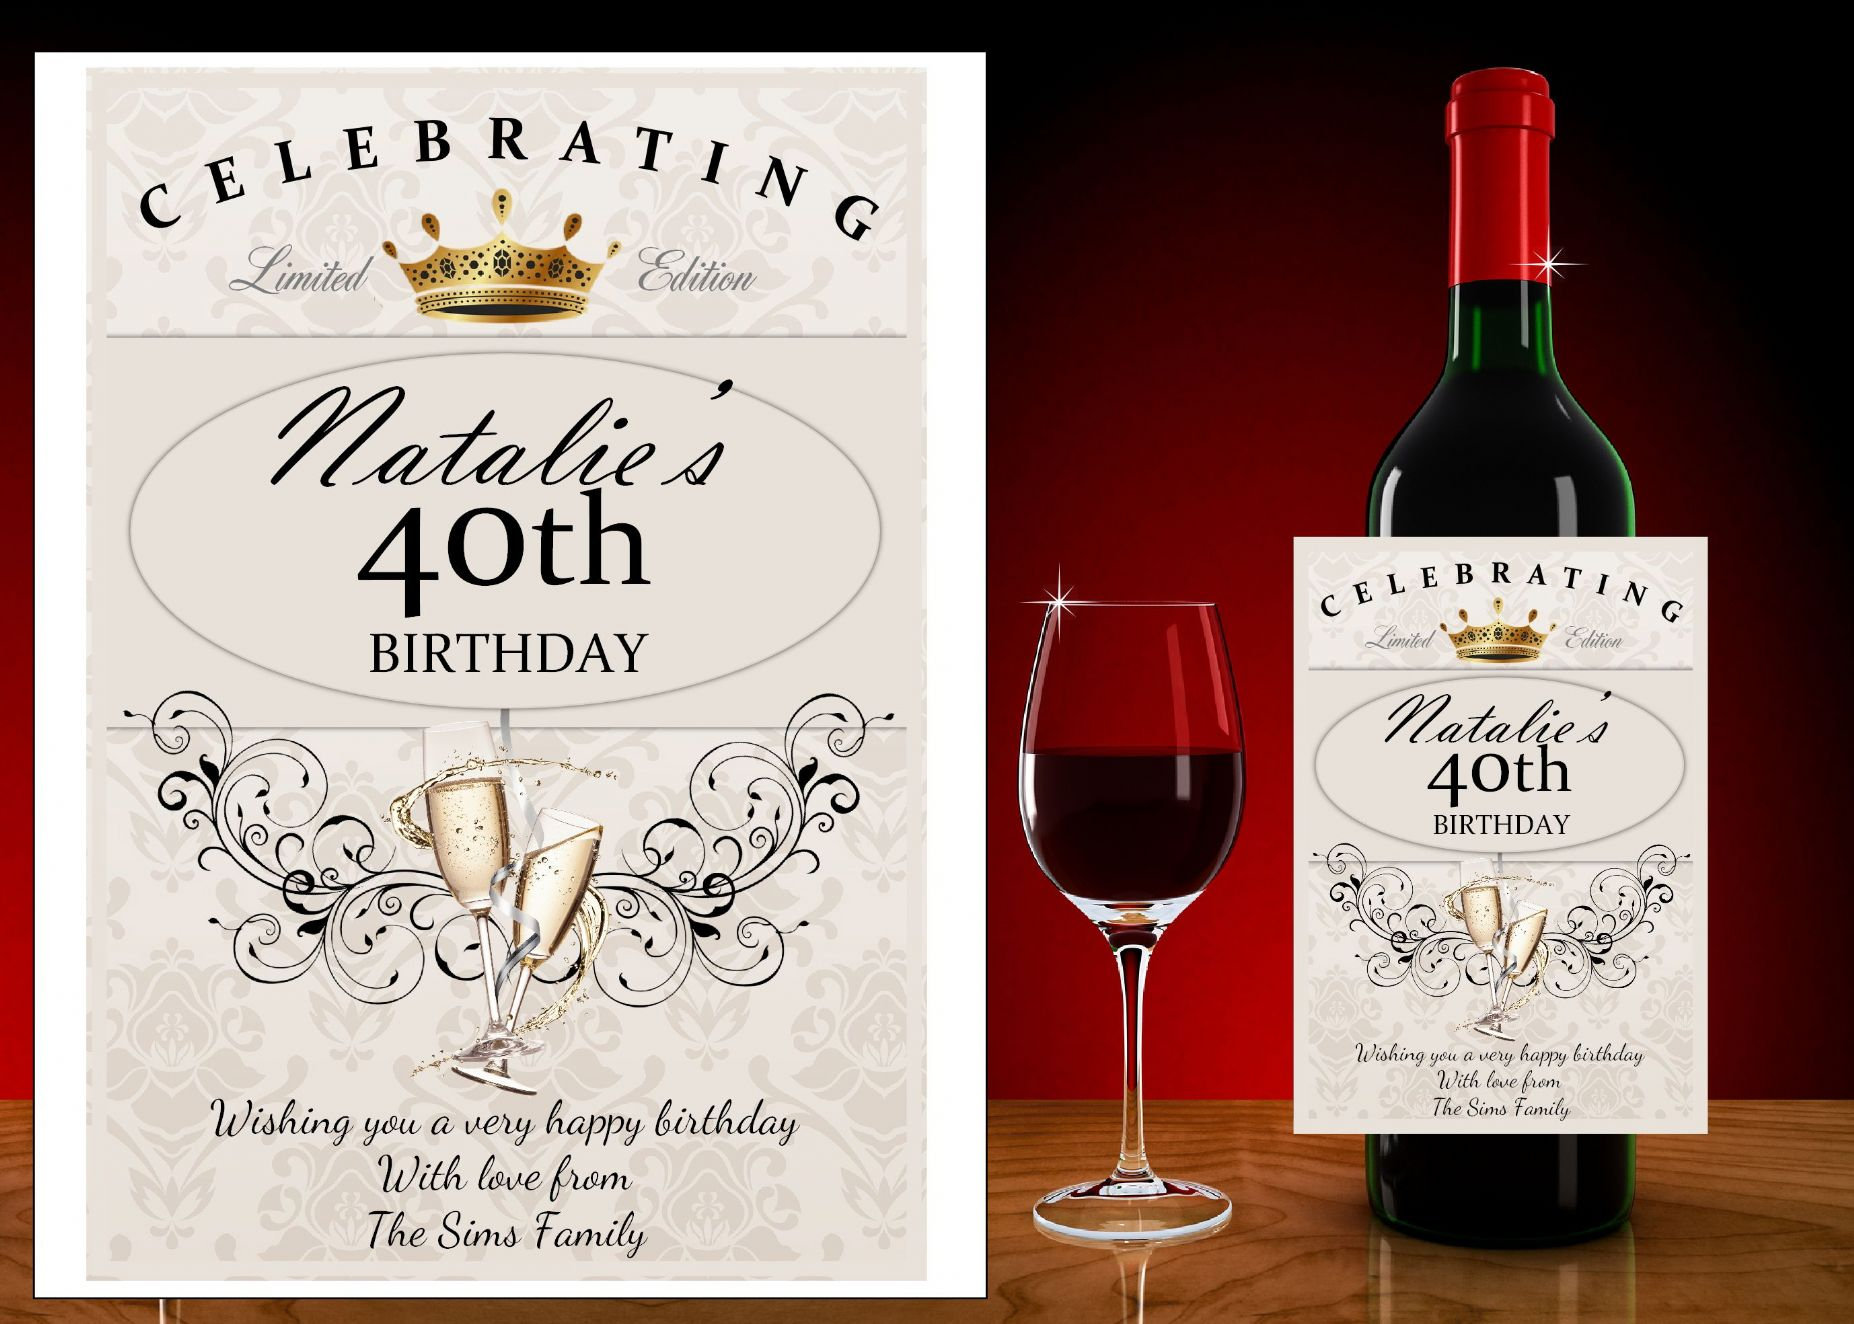 18th birthday wine labels ; personalised-happy-birthday-wine-champagne-bottle-label-gift-idea-n64-bottle-label-size-champagne-bottle-9cm-h-x-13cm-w-14026-p